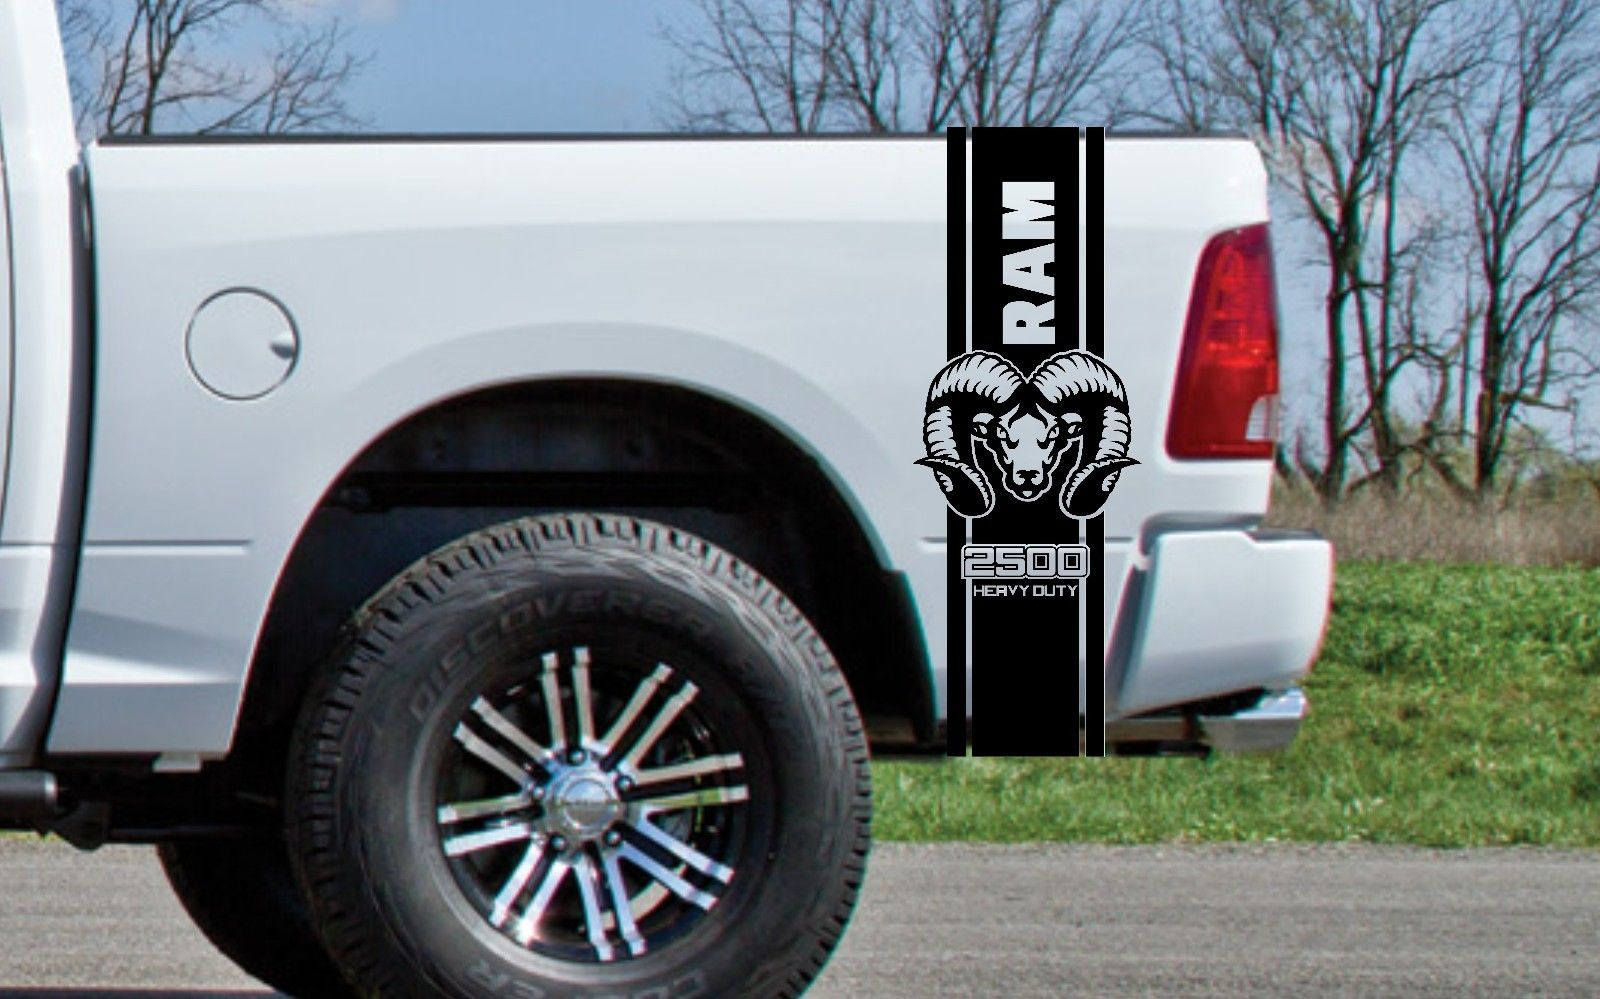 2x dodge bed fender decals ram hemi 3500 heavy duty vinyl body decal stickers